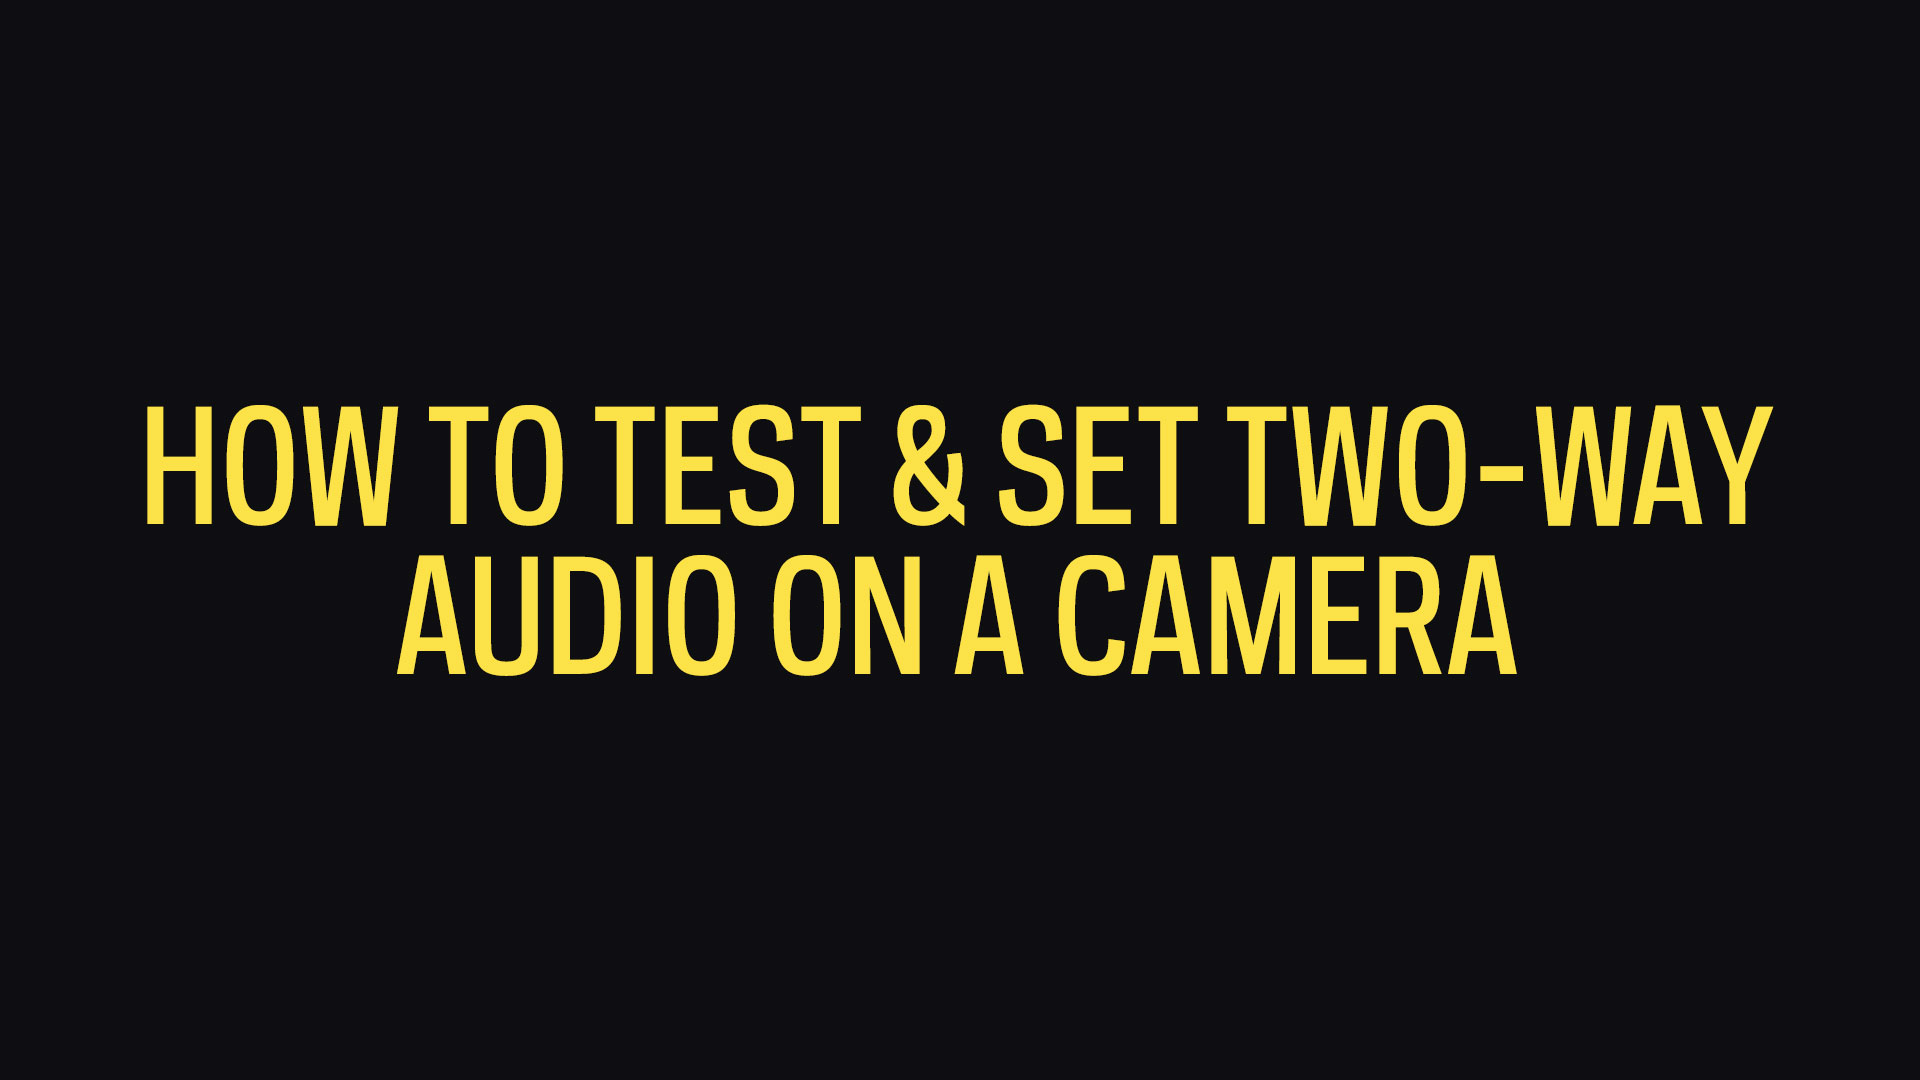 How To Test & Set Two-way Audio On The Camera